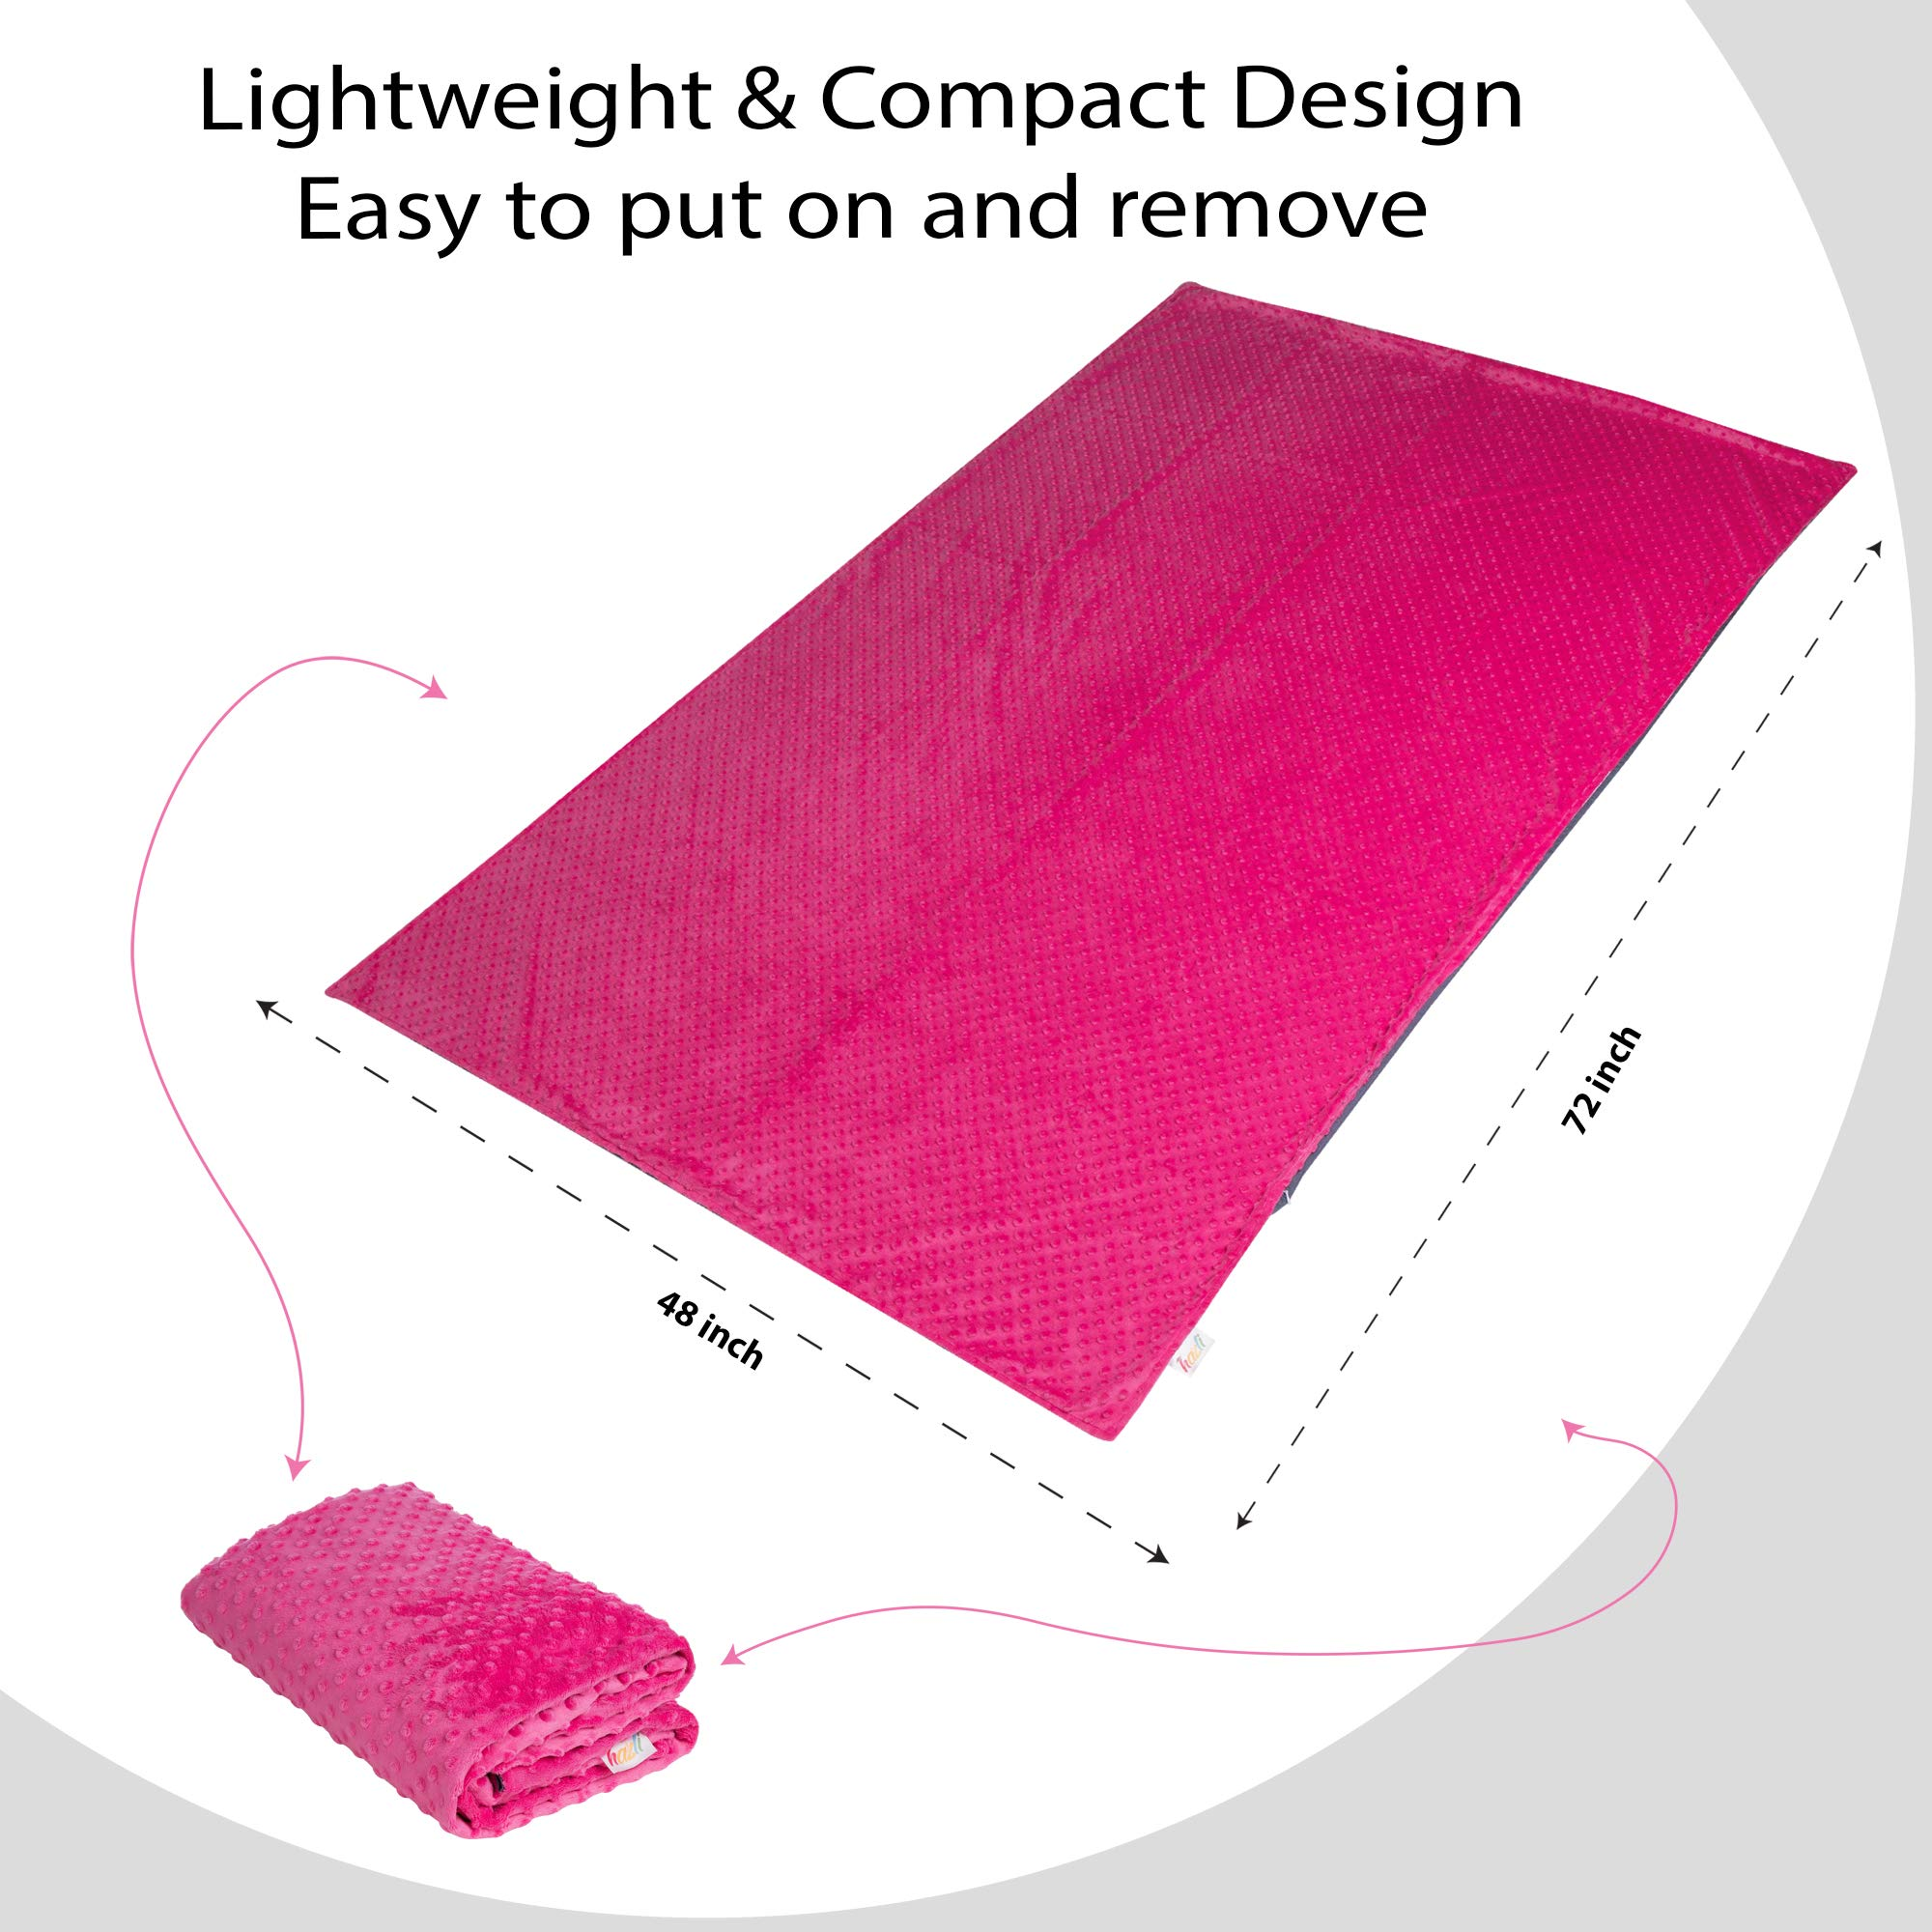 Double Sided Duvet Cover for Weighted Blanket - 48''x 72'' Soft Cotton and Cooling Bamboo Weighted Blanket Covers - Removable and Washable Blanket Cover for Hot and Cold Nights (Pink Cover) by Hazli (Image #7)